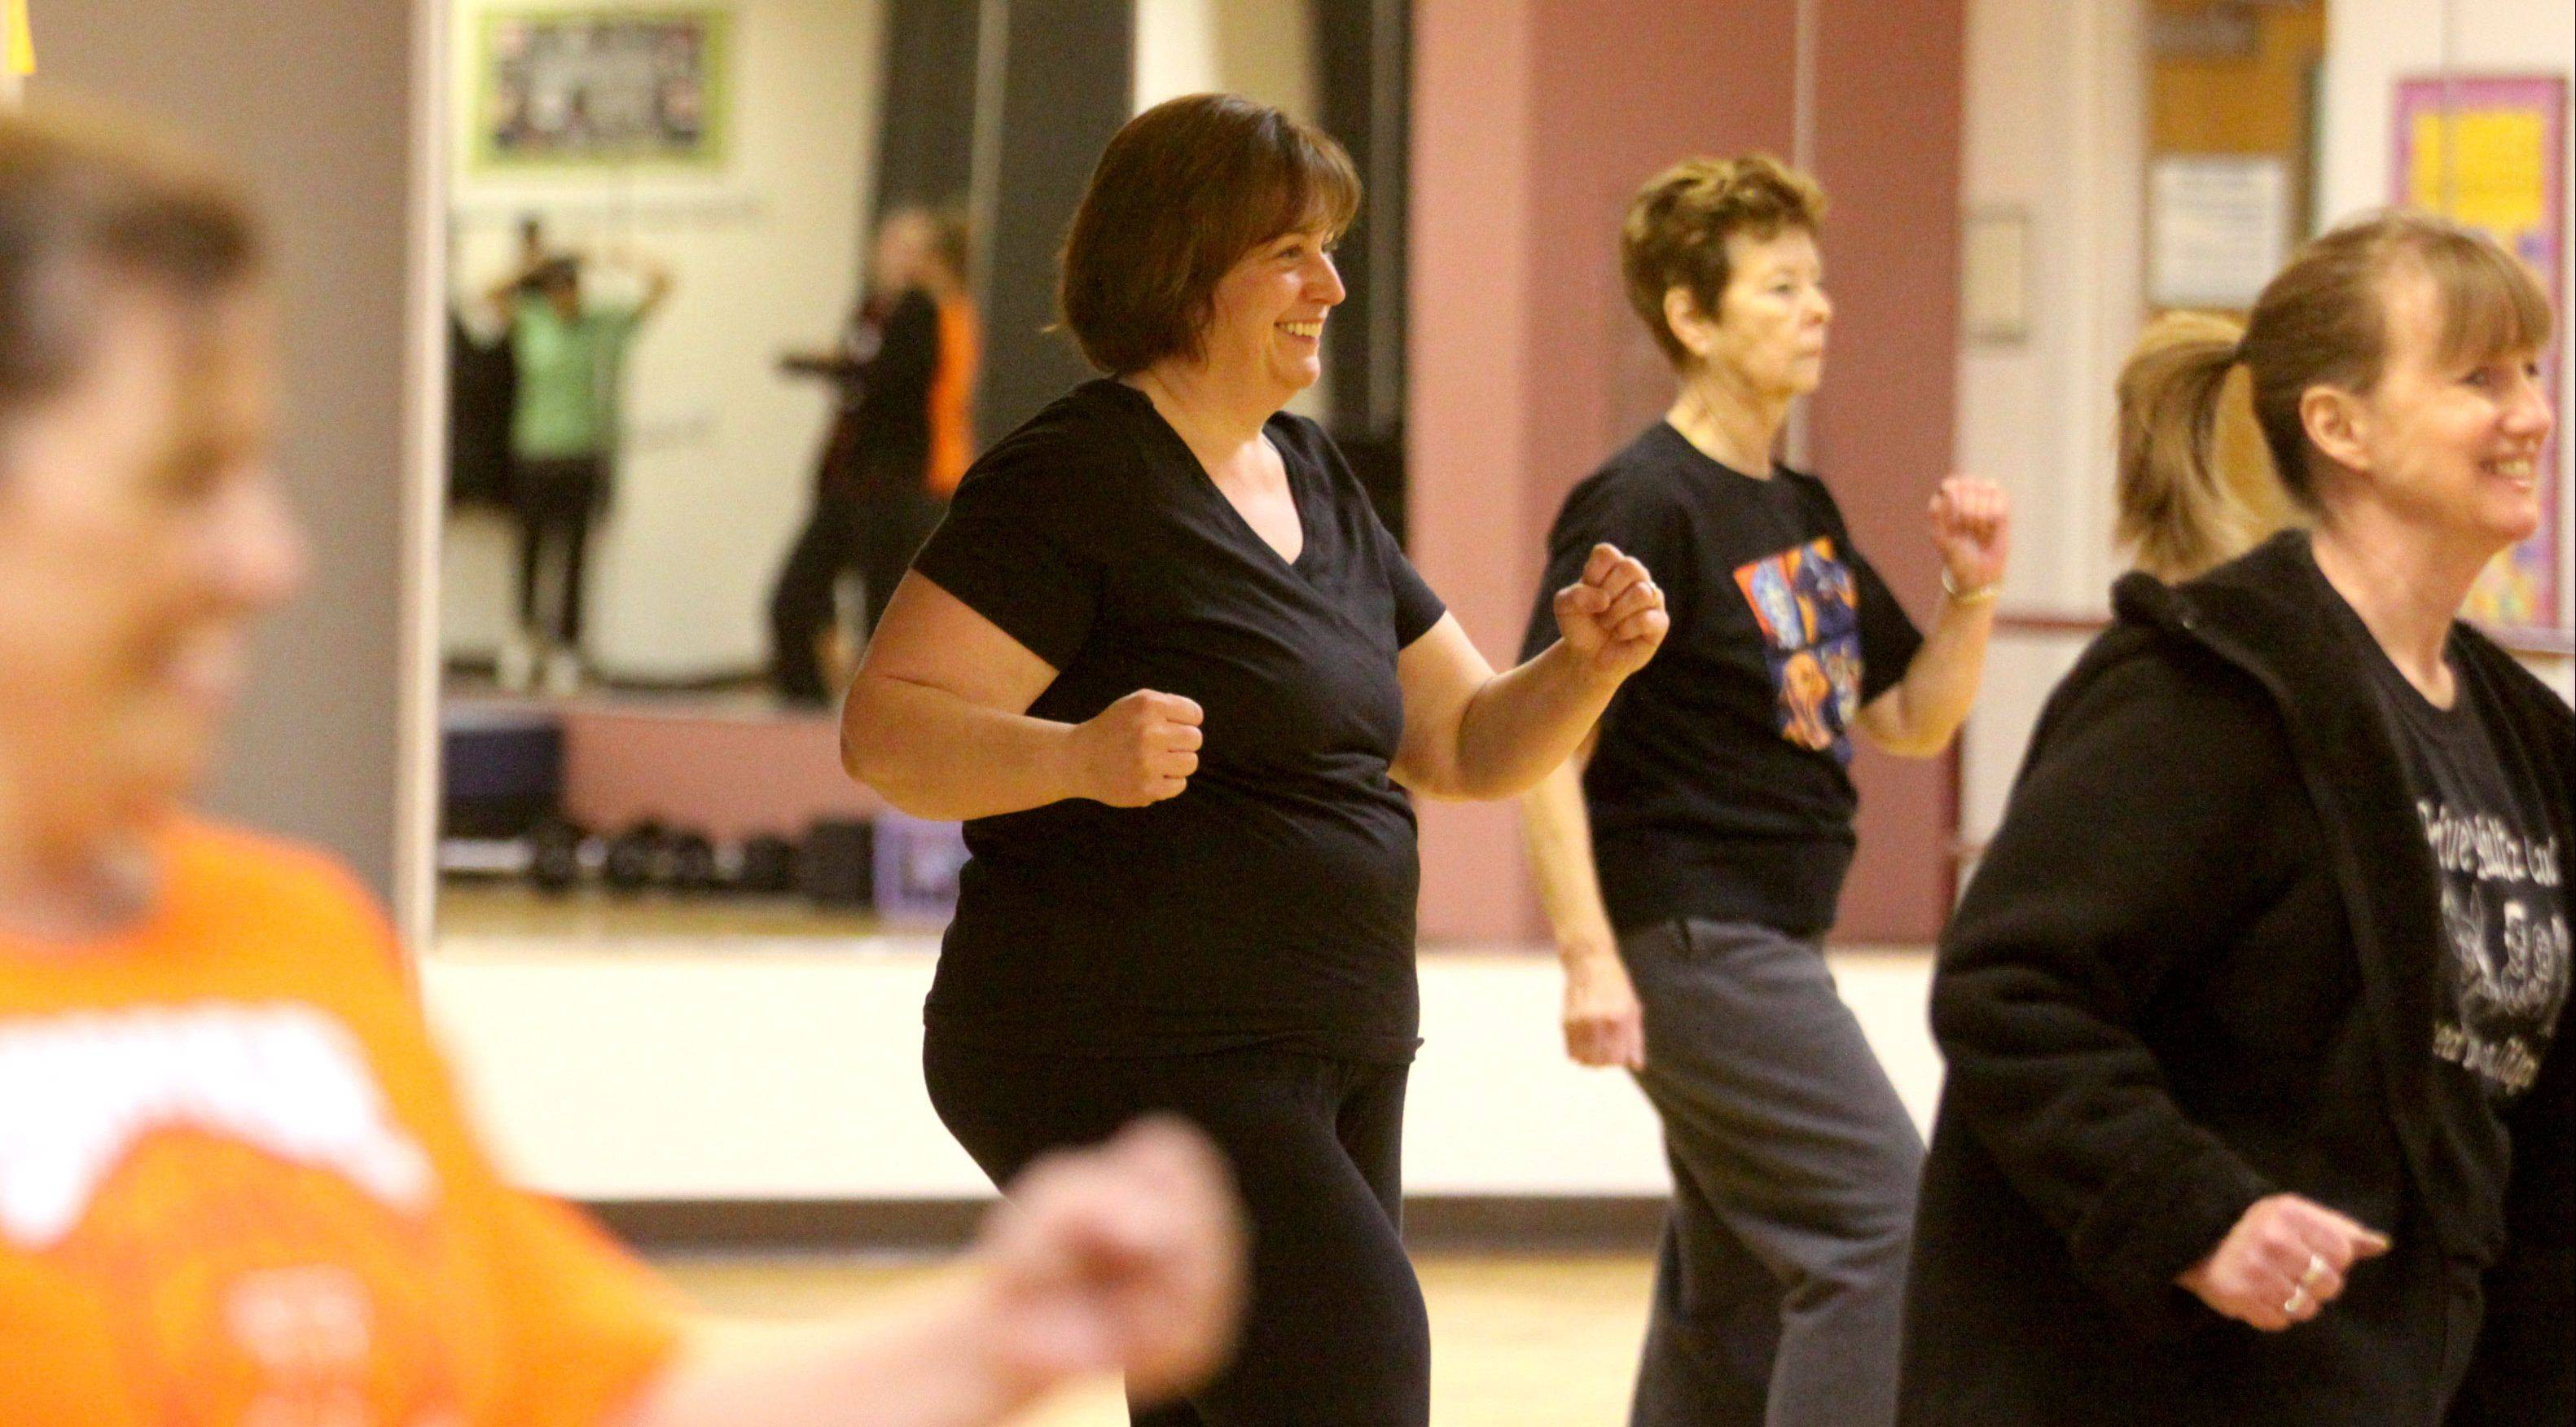 Karen Maranto, center, enjoys a Zumba class taught by Nannette Dukes at the Hanover Park Centre Court Athletic Club.